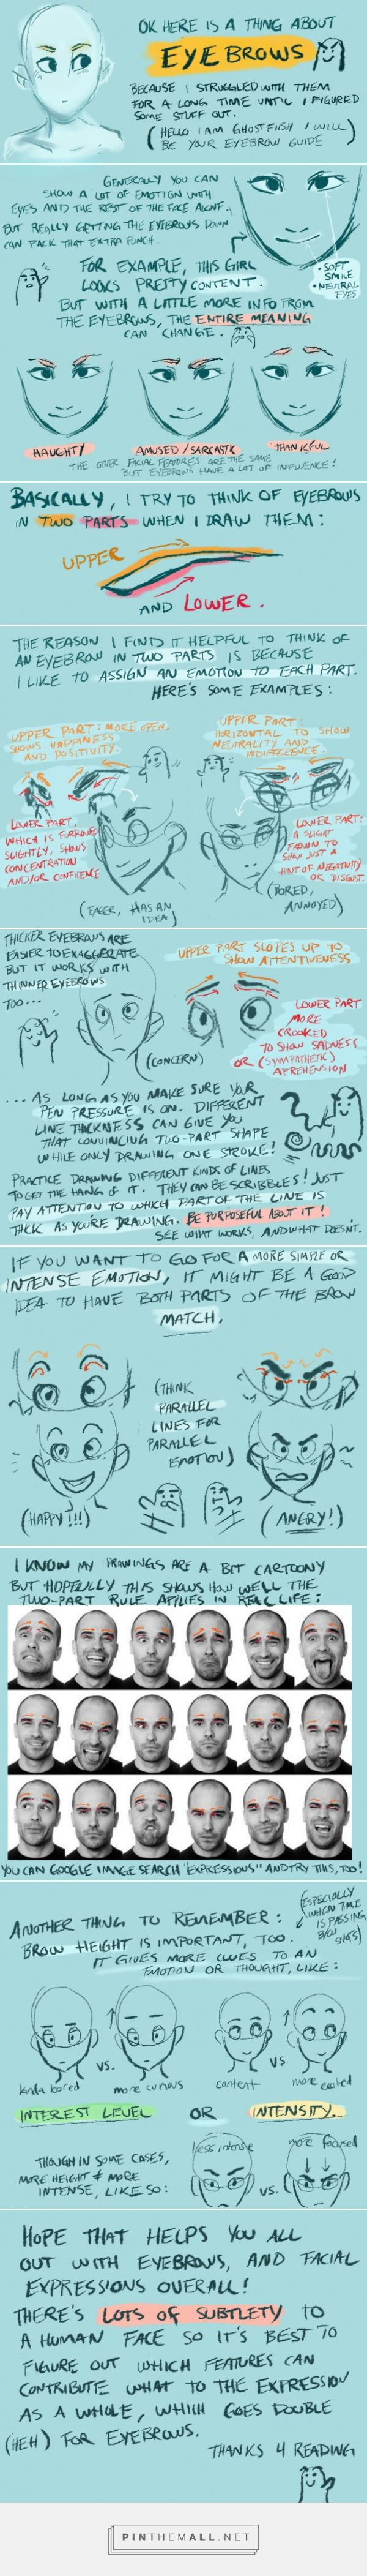 a tutorial for eyebrows!: http://ghostfiish.tumblr.com/post/62406002826/i-made-a-tutorial-for-eyebrows-as-i-was-doodling... - a grouped images picture ★ || CHARACTER DESIGN REFERENCES (https://www.facebook.com/CharacterDesignReferences & https://www.pinterest.com/characterdesigh) • Love Character Design? Join the #CDChallenge (link→ https://www.facebook.com/groups/CharacterDesignChallenge) Share your unique vision of a theme, promote your art in a community of over 25.000 artists! || ★